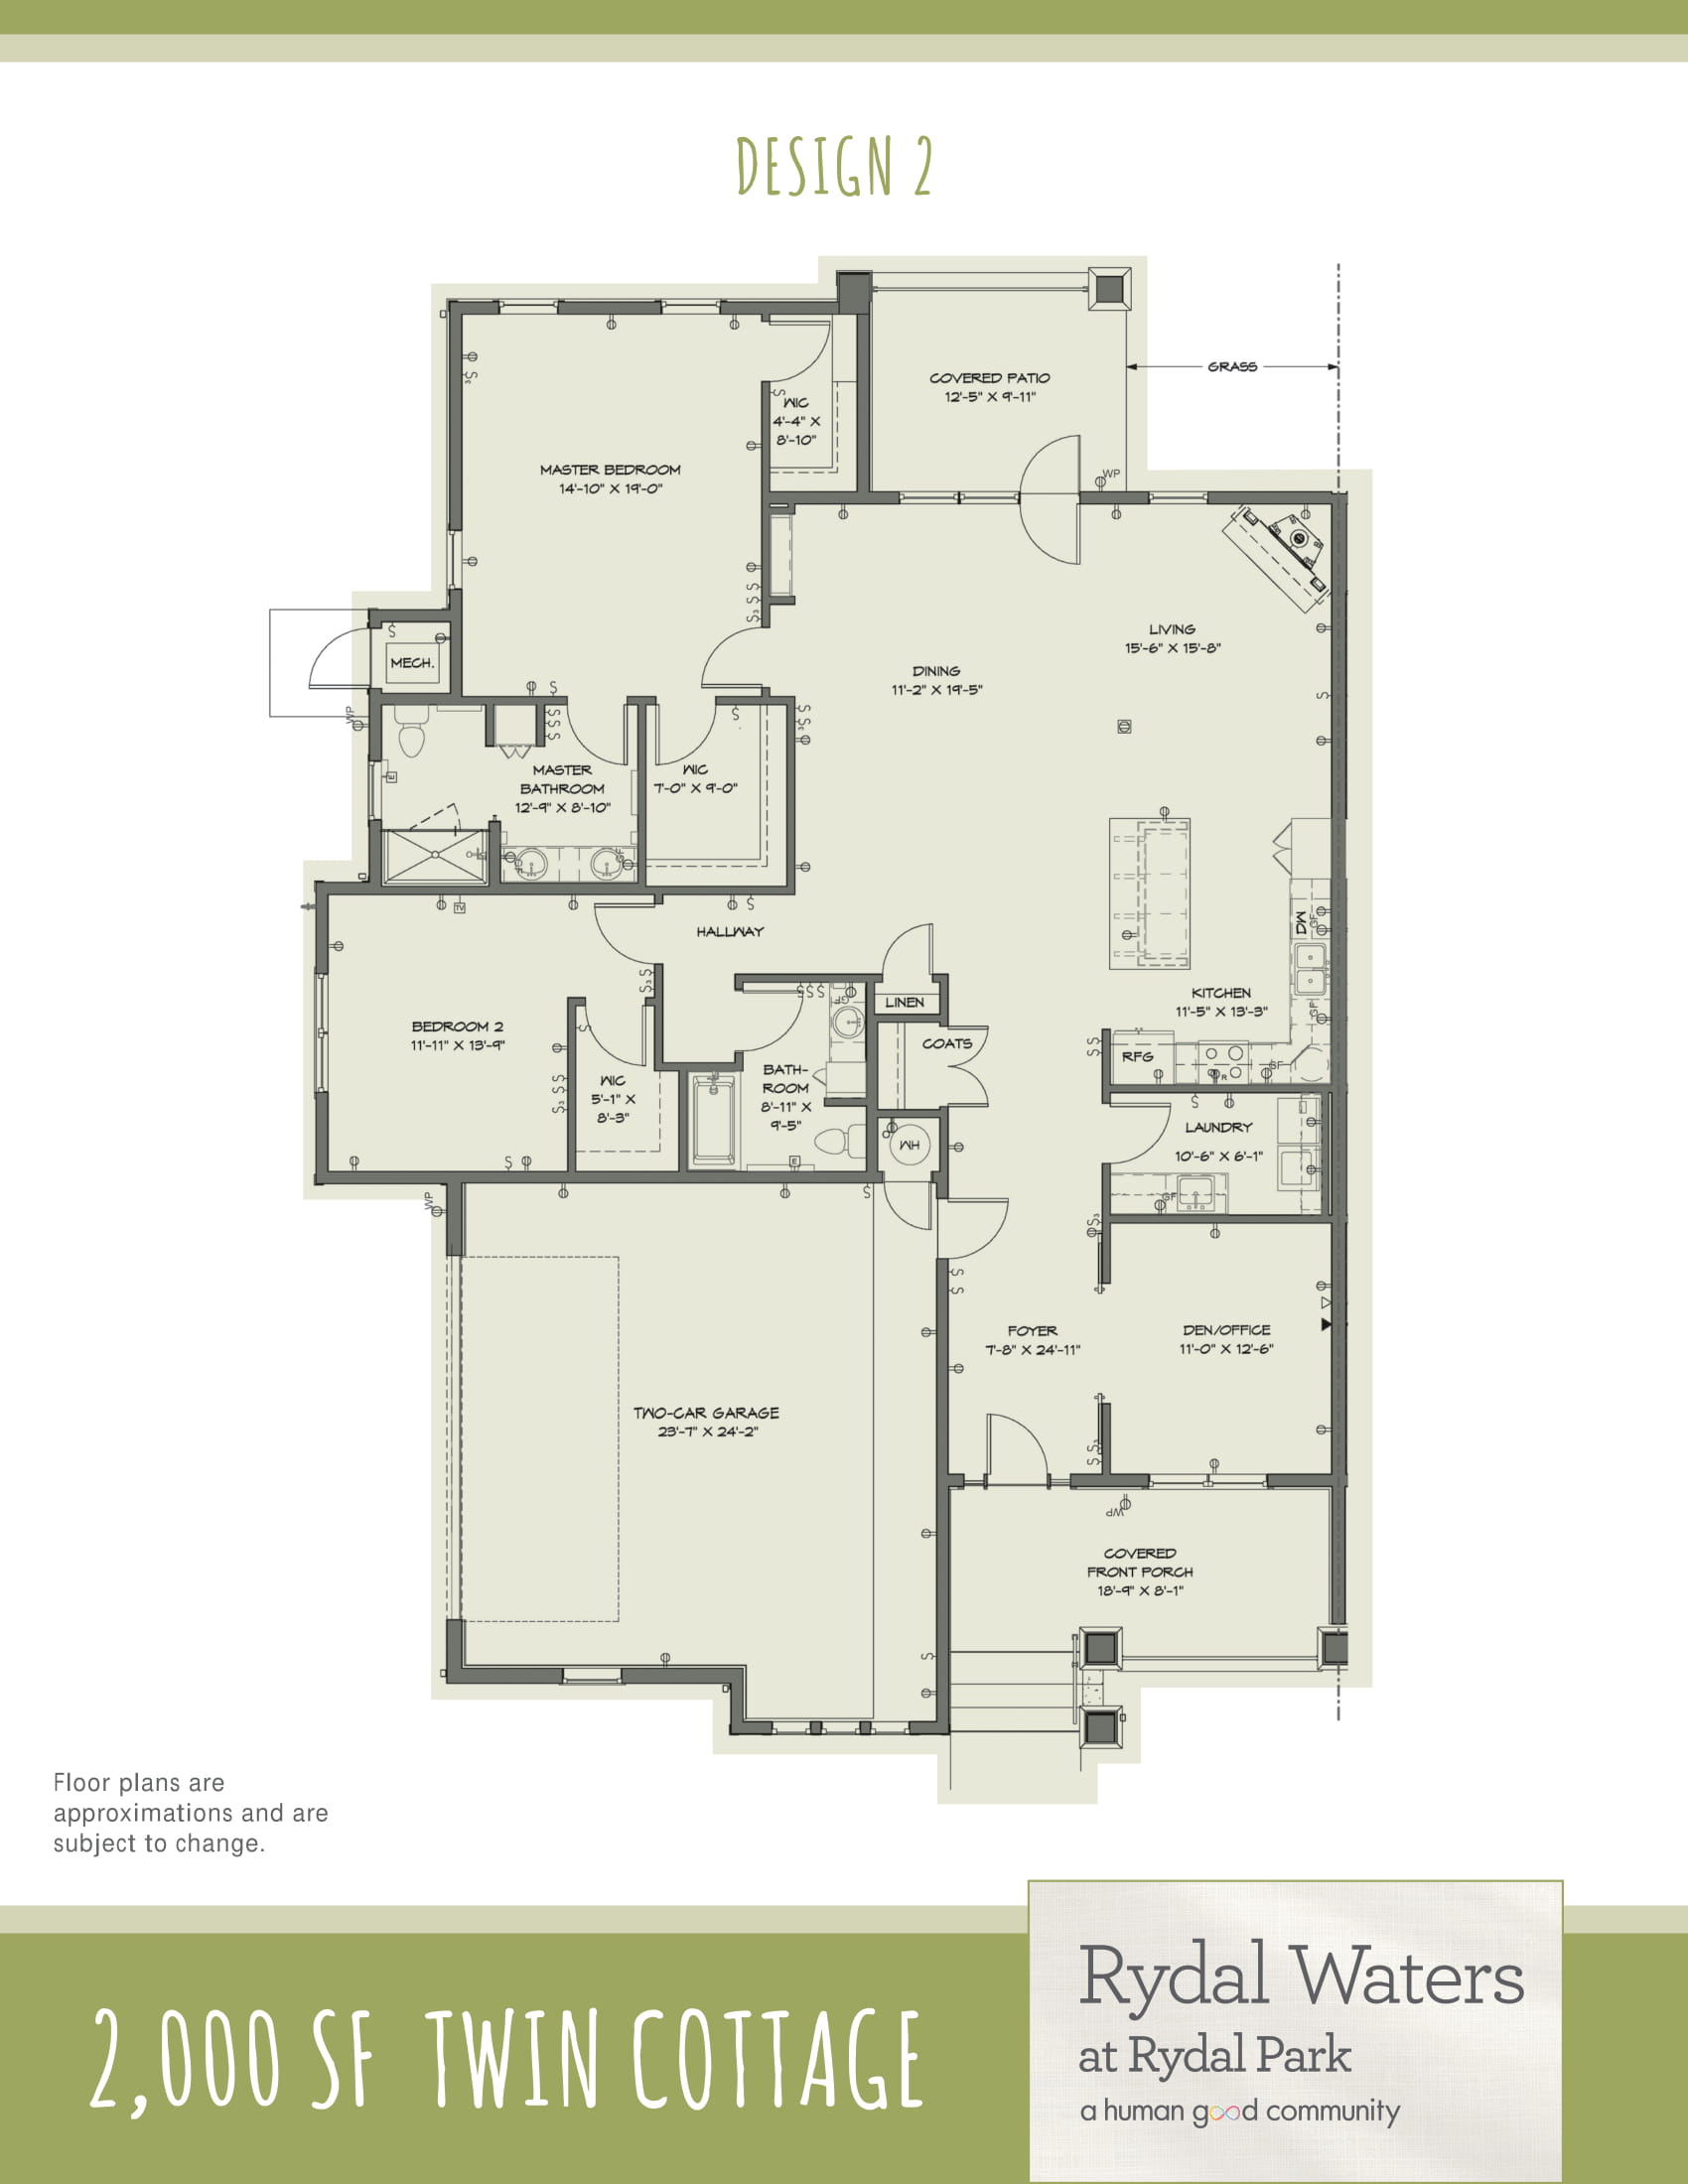 rydal-waters-cottage-2000_Design2-1